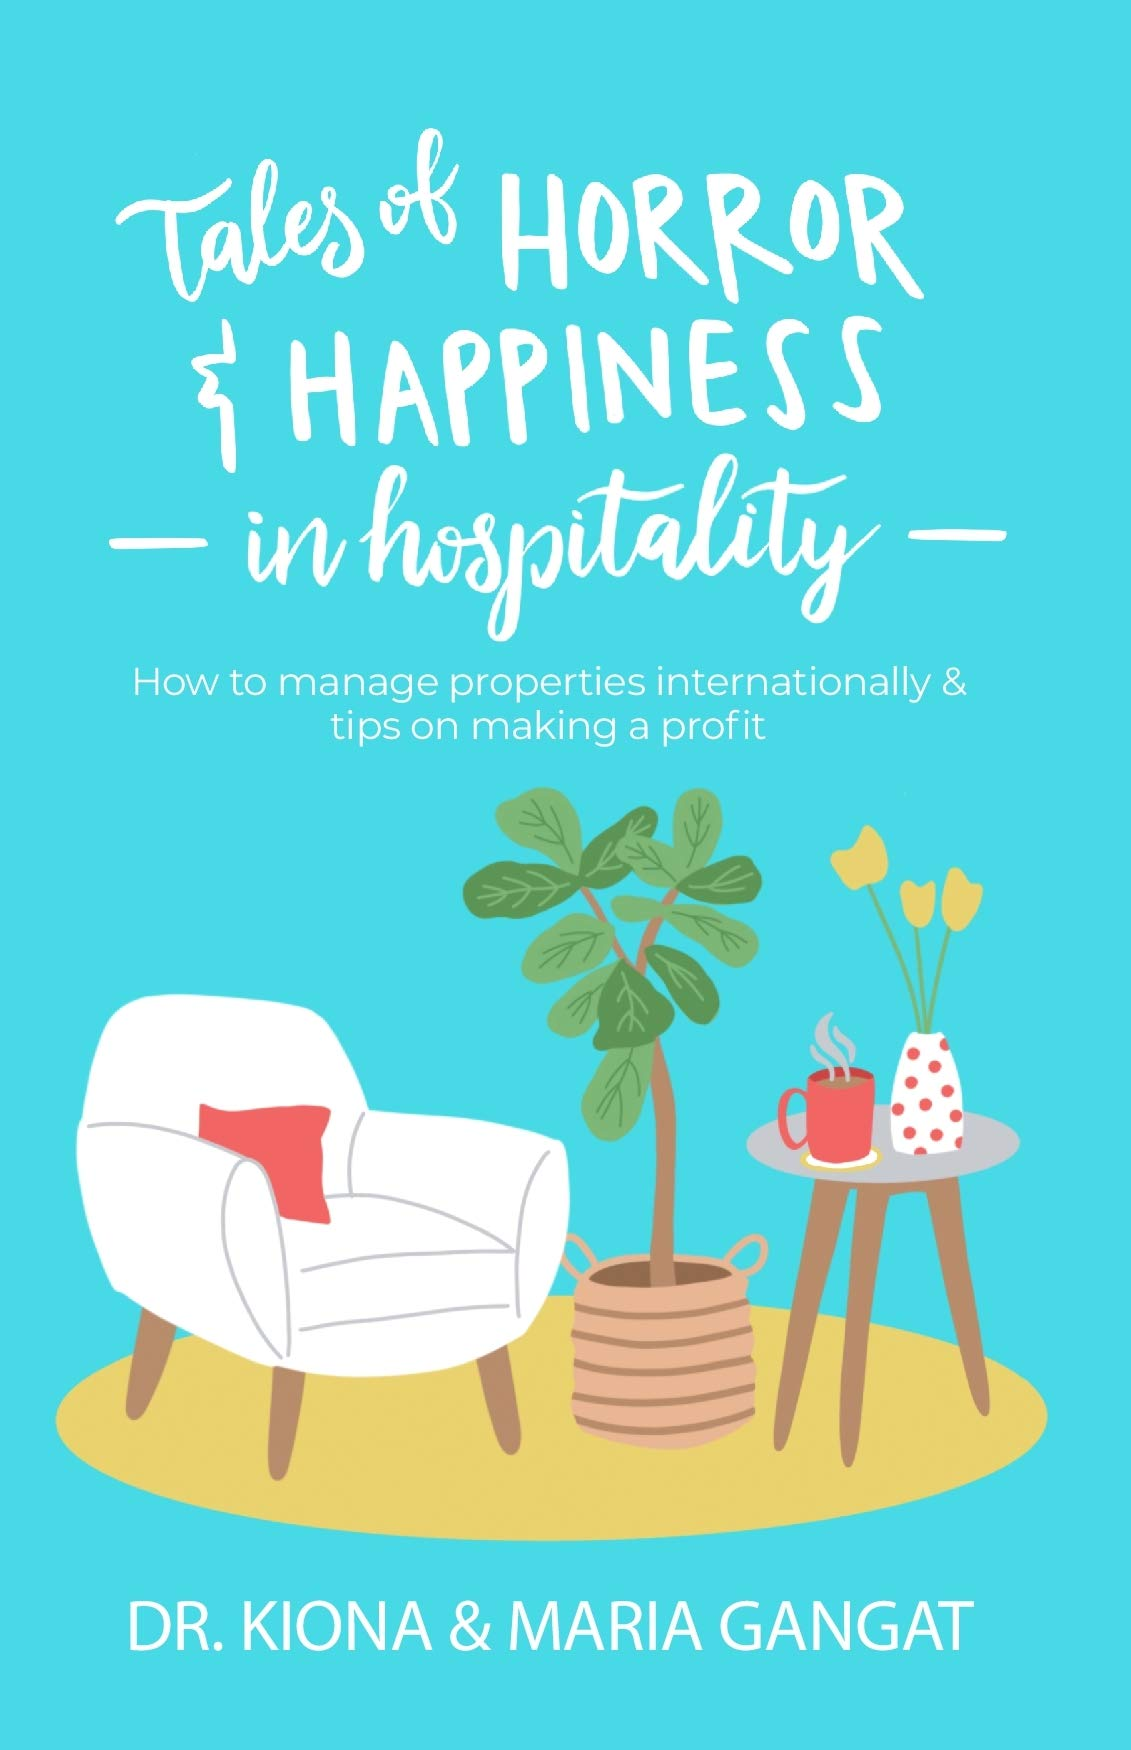 Tales of Horror & Happiness in Hospitality: How to manage properties internationally & tips on making a profit